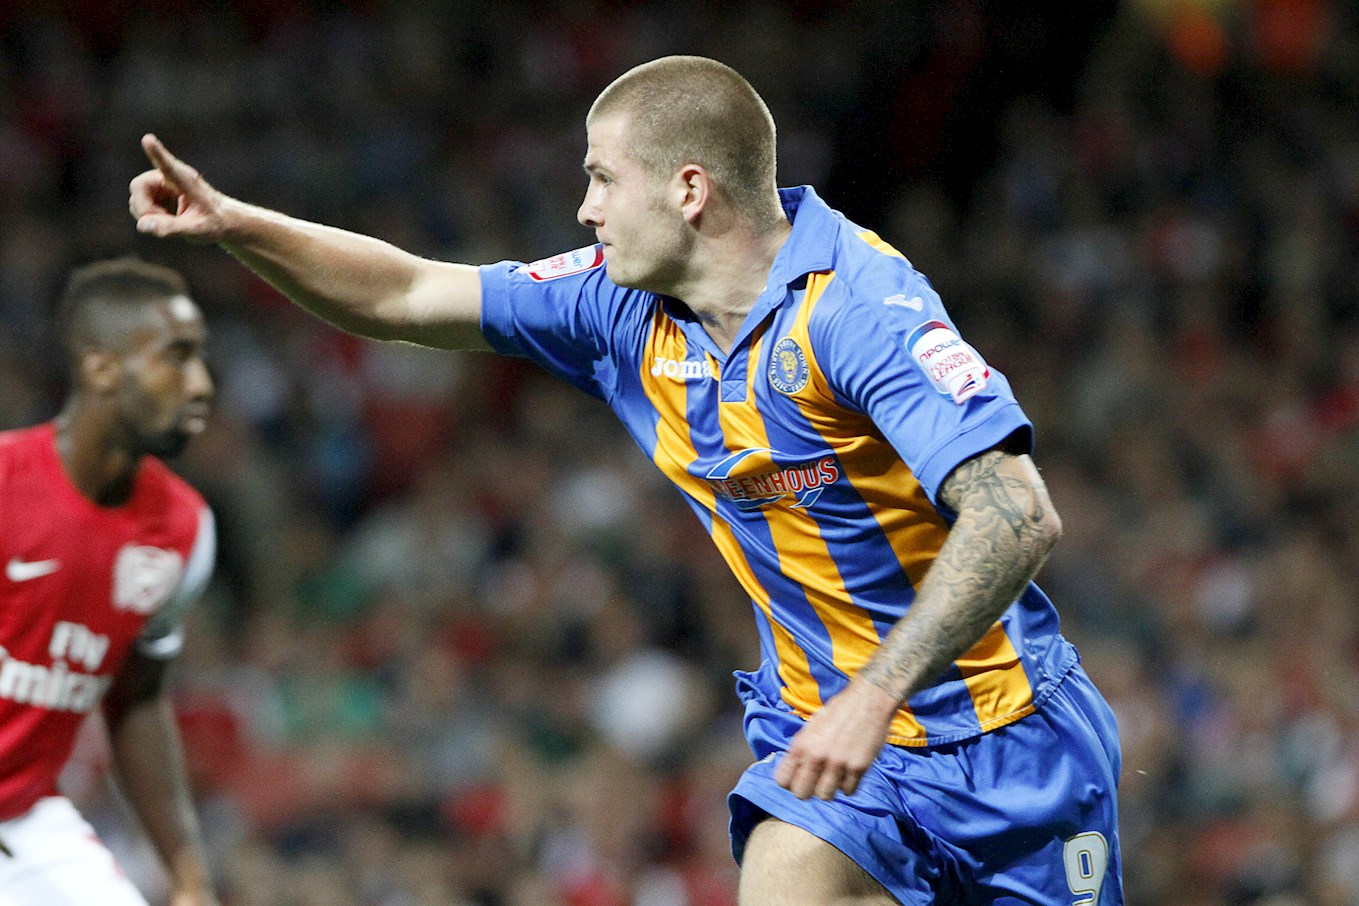 James Collins celebrating a goal for Shrewsbury Town against Arsenal early in his career